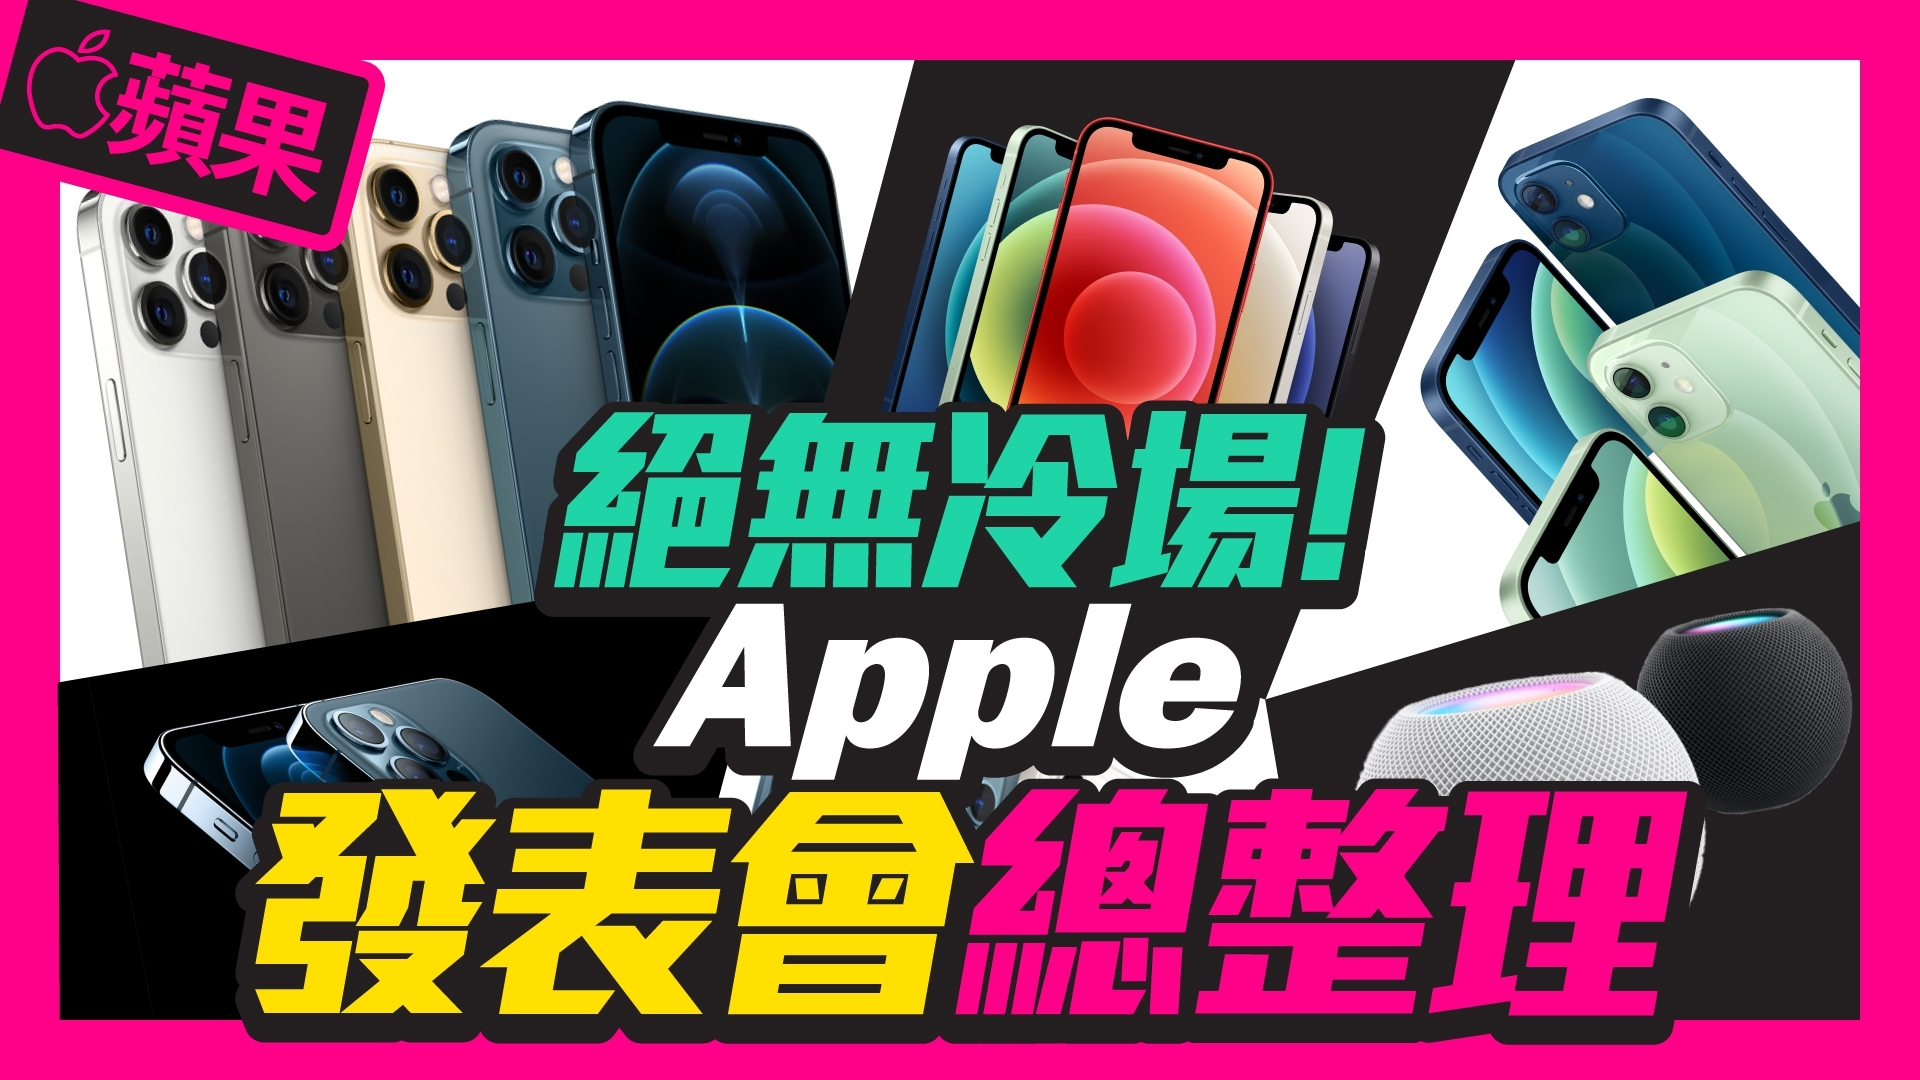 Apple iPhone12蘋果發表會懶人包一次看:HomePod mini、iPhone12 mini、iPhone12 Pro、iPhone12 Pro Max、Magsafe 無線充電器